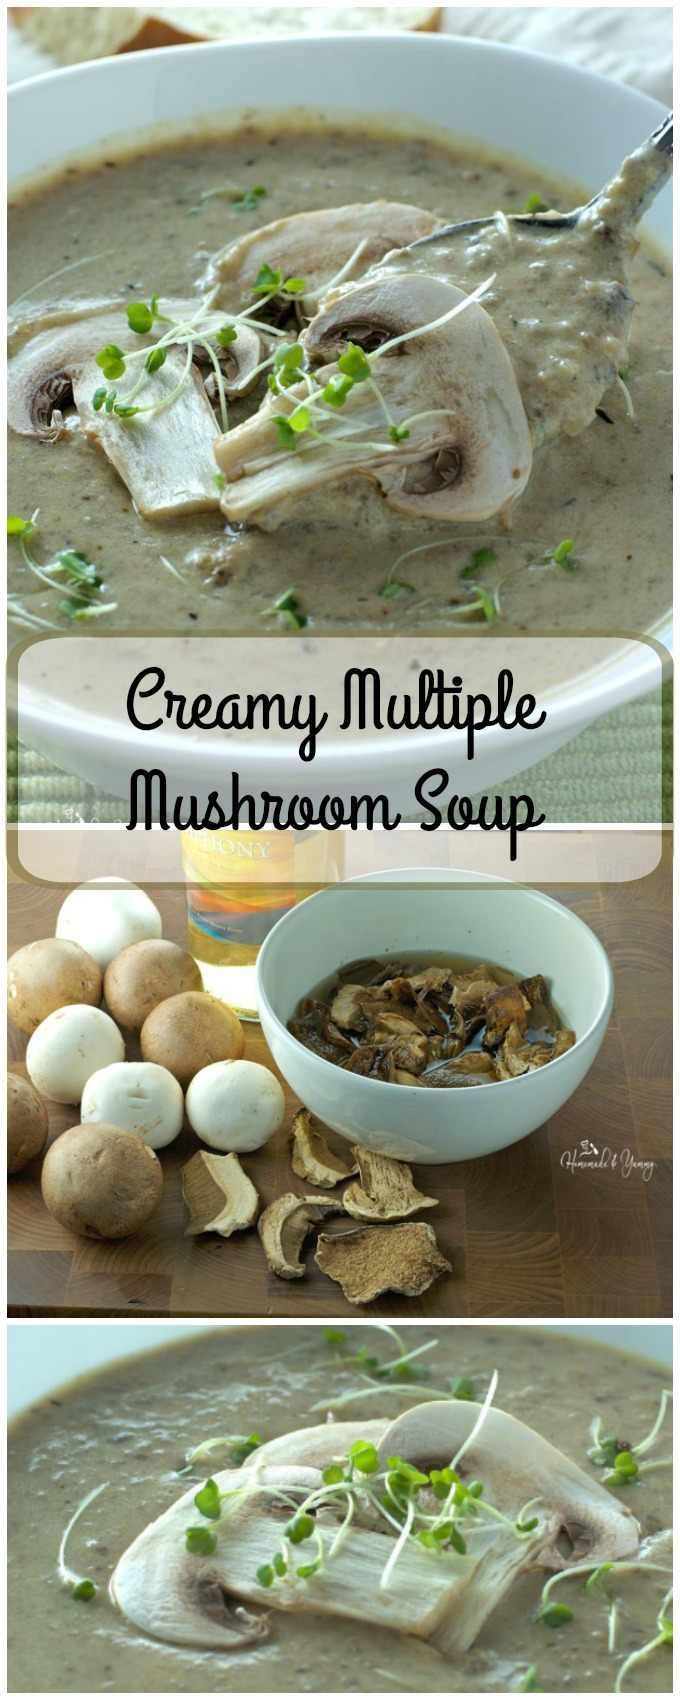 Fresh and dried mushrooms are used to make this Creamy Multiple Mushroom Soup…